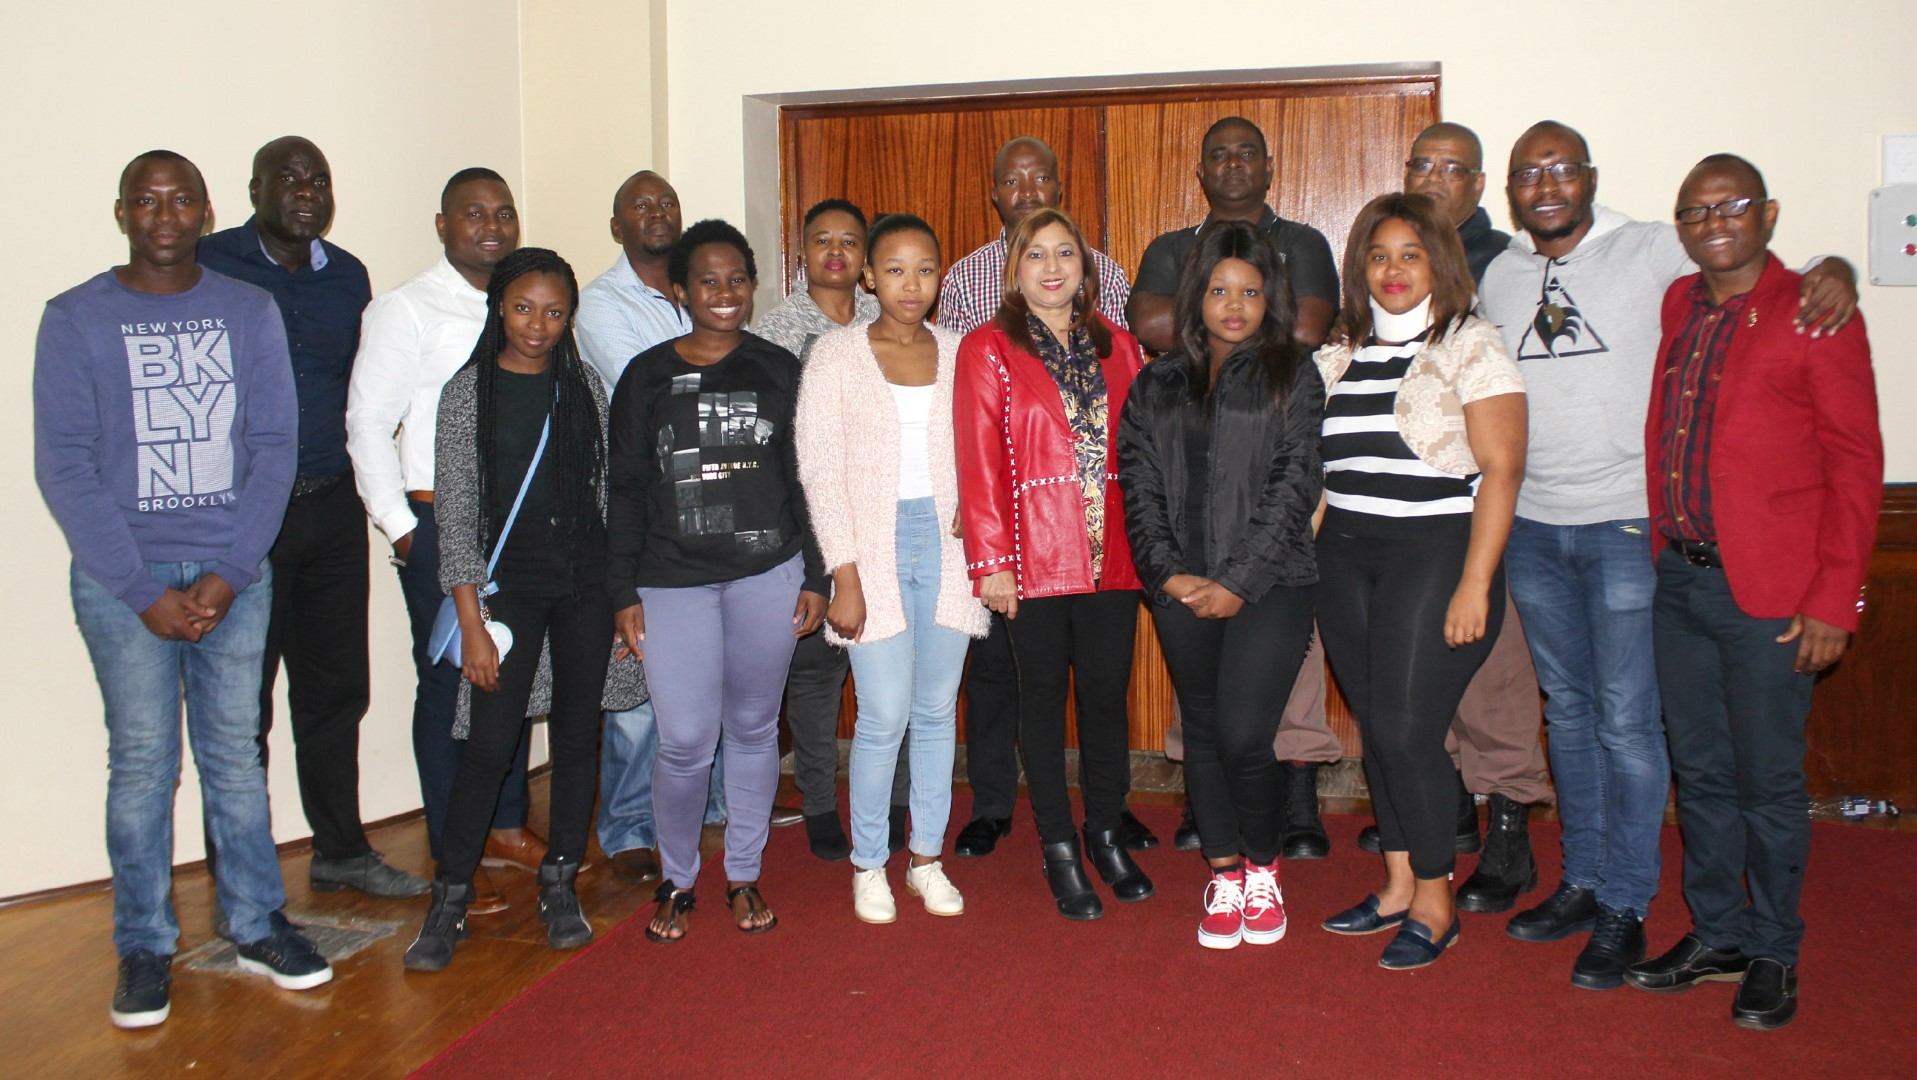 UKZN staff and students seen with DCS representatives during an orientation session.